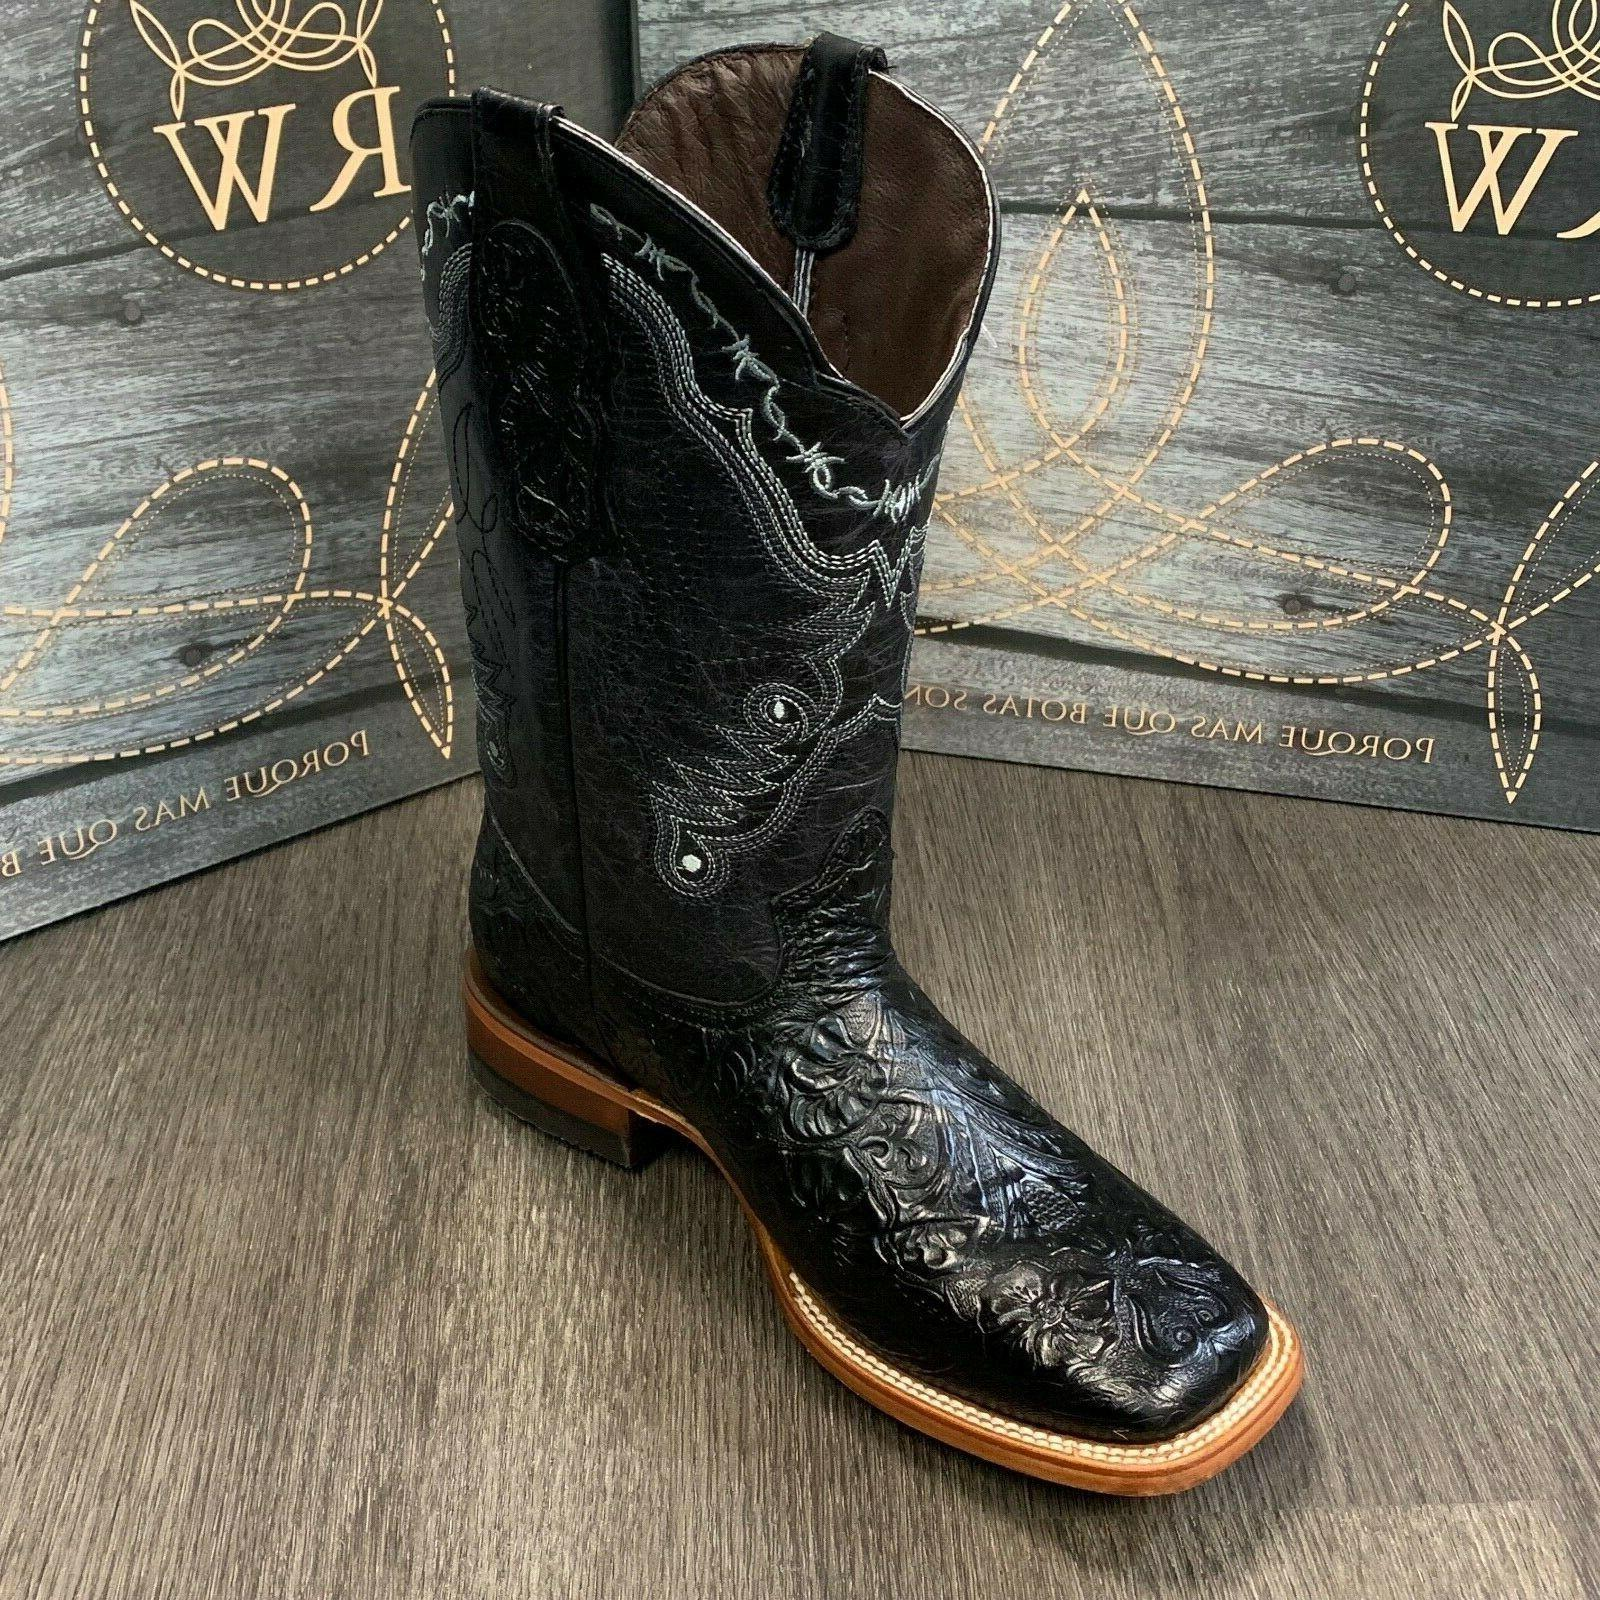 MEN'S REYWELT HAND TOOLED LEATHER